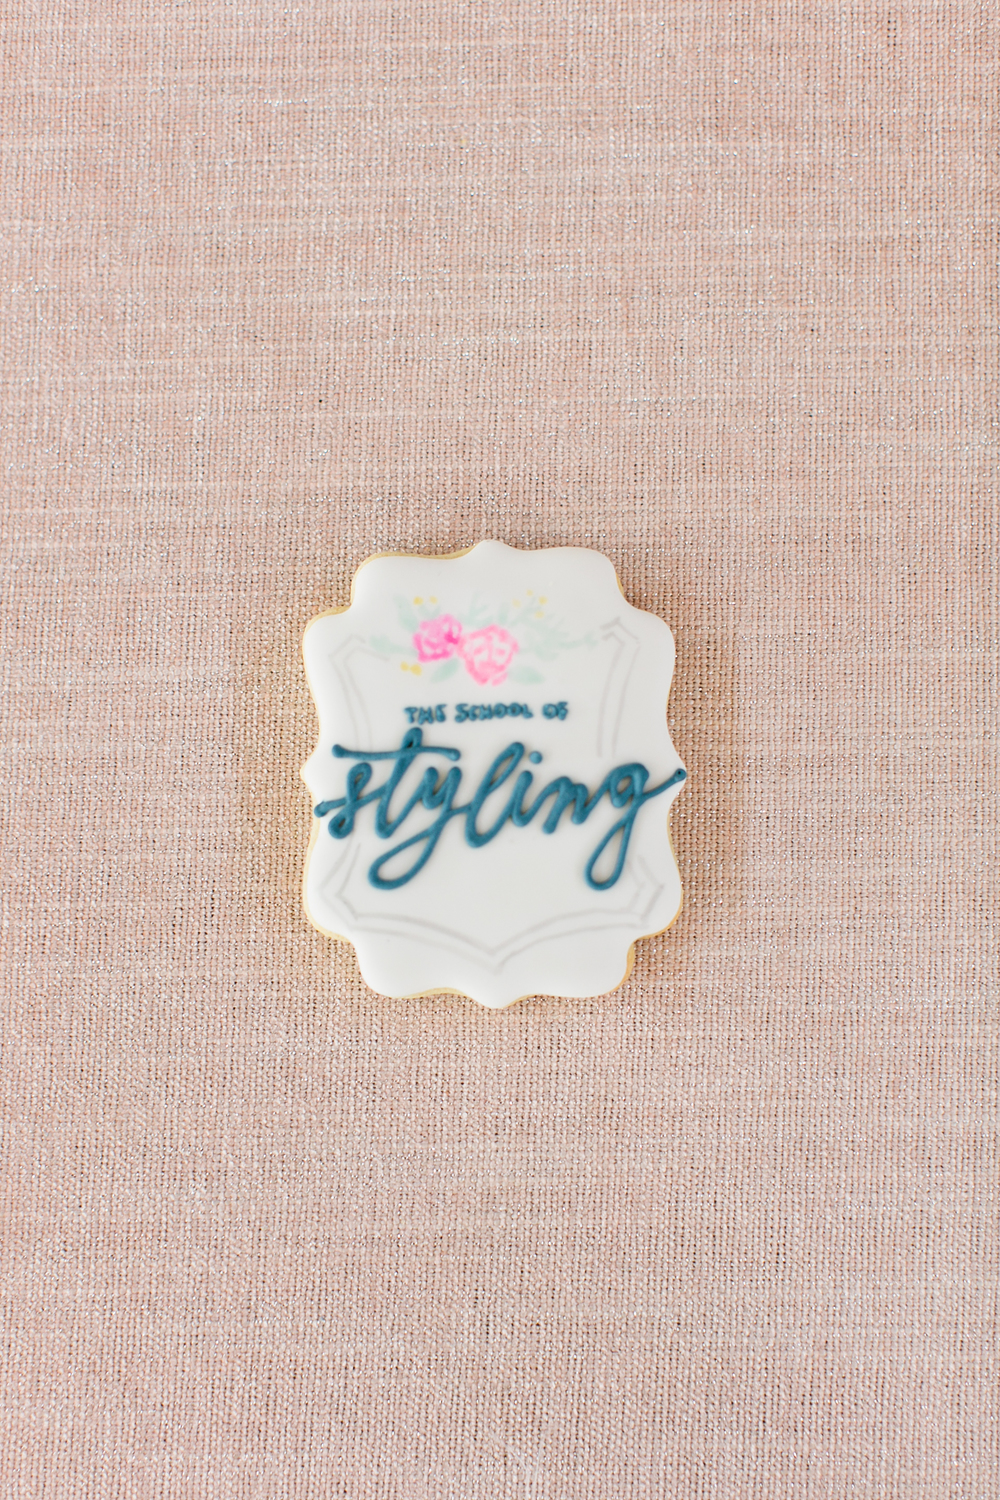 Cookie design | Frosting art | The School of Styling Nashville - A three-day hands-on workshop for creative entrepreneurs. http://www.theschoolofstyling.com